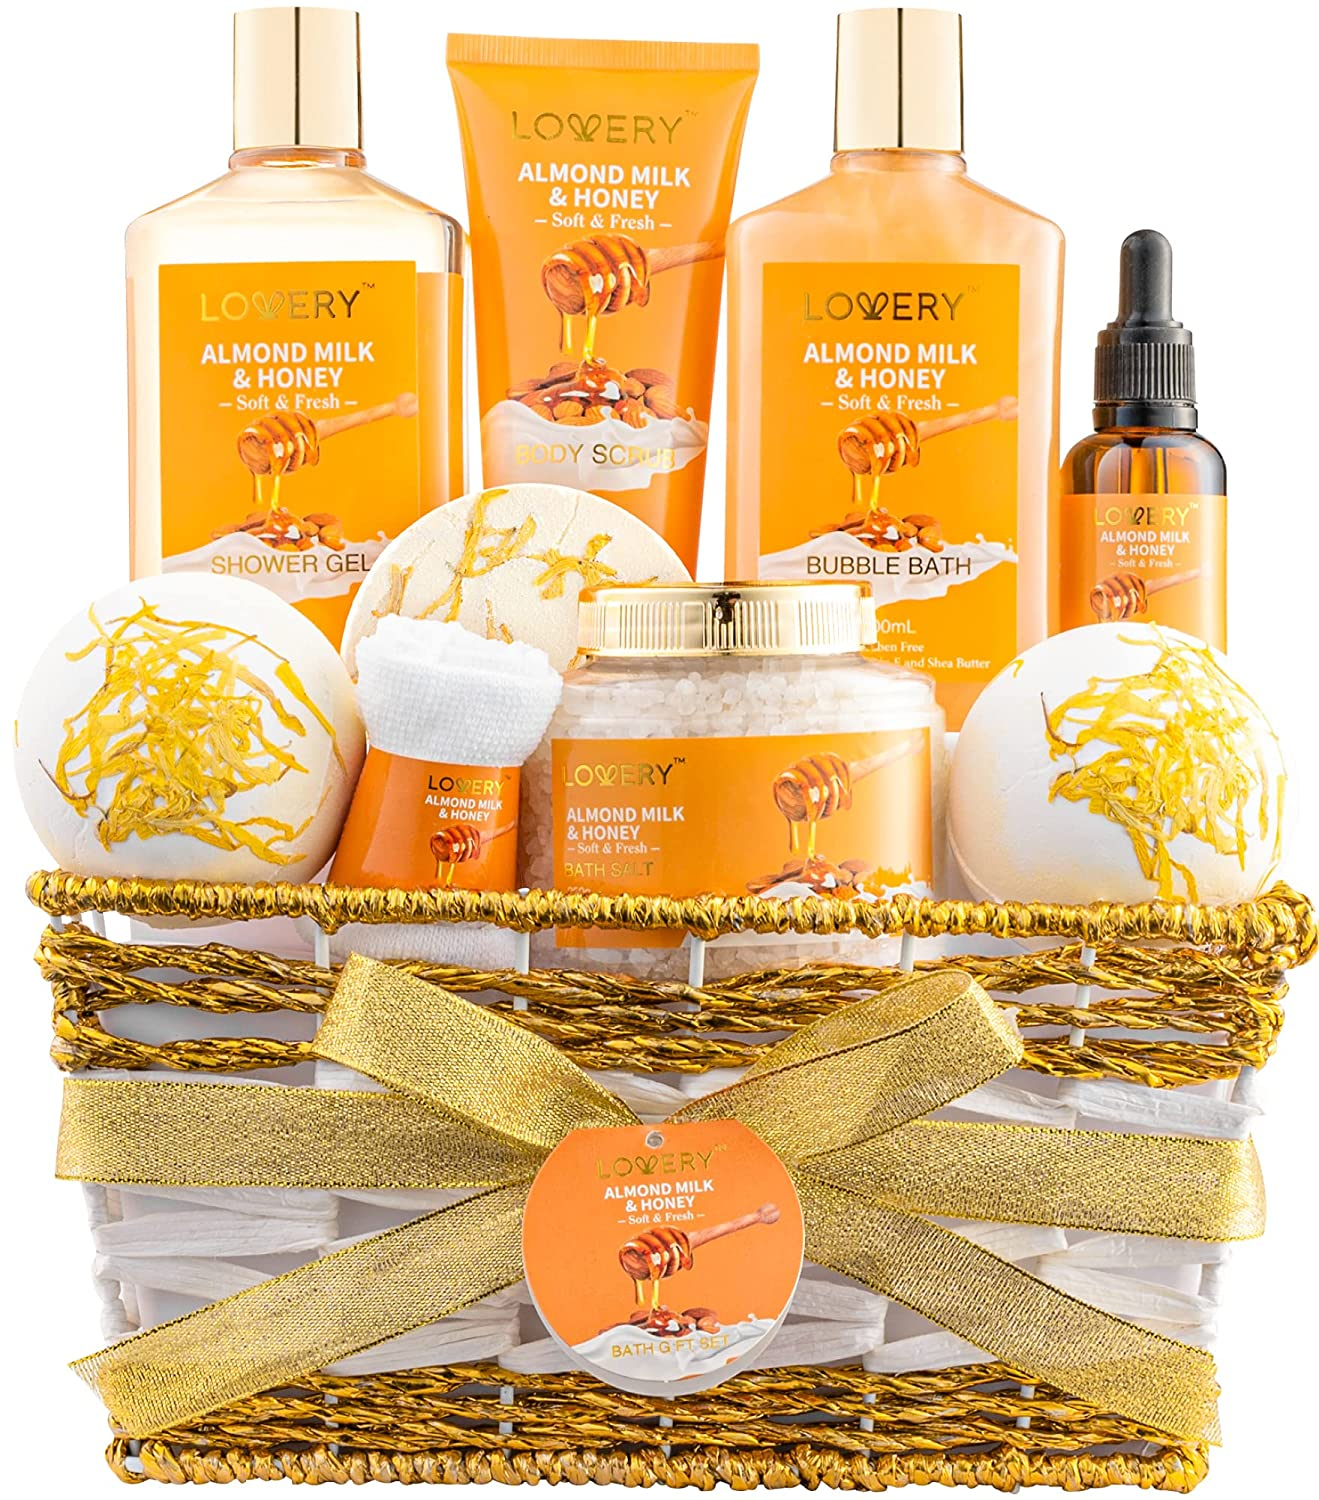 Gift Basket For Women – 10 Pc Almond Milk & Honey Beauty & Personal Care Set - Home Bath Pampering Package for Relaxing Stress Relief - Spa Self Care Kit - Thank You, Birthday, Mom, Mother's Day Gift